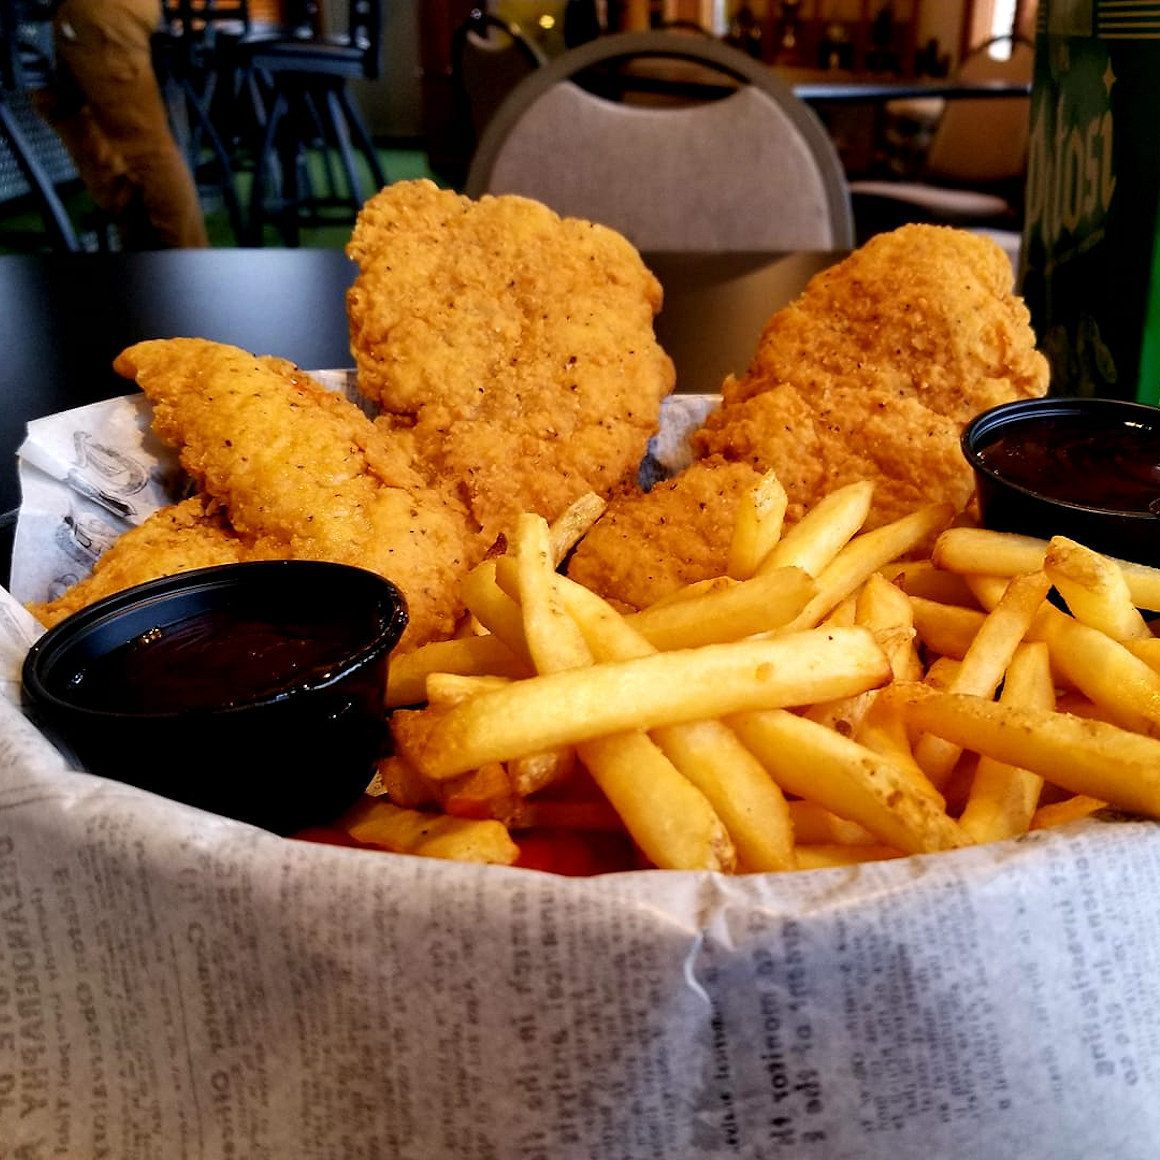 Lunch - Chicken Tenders & Fries